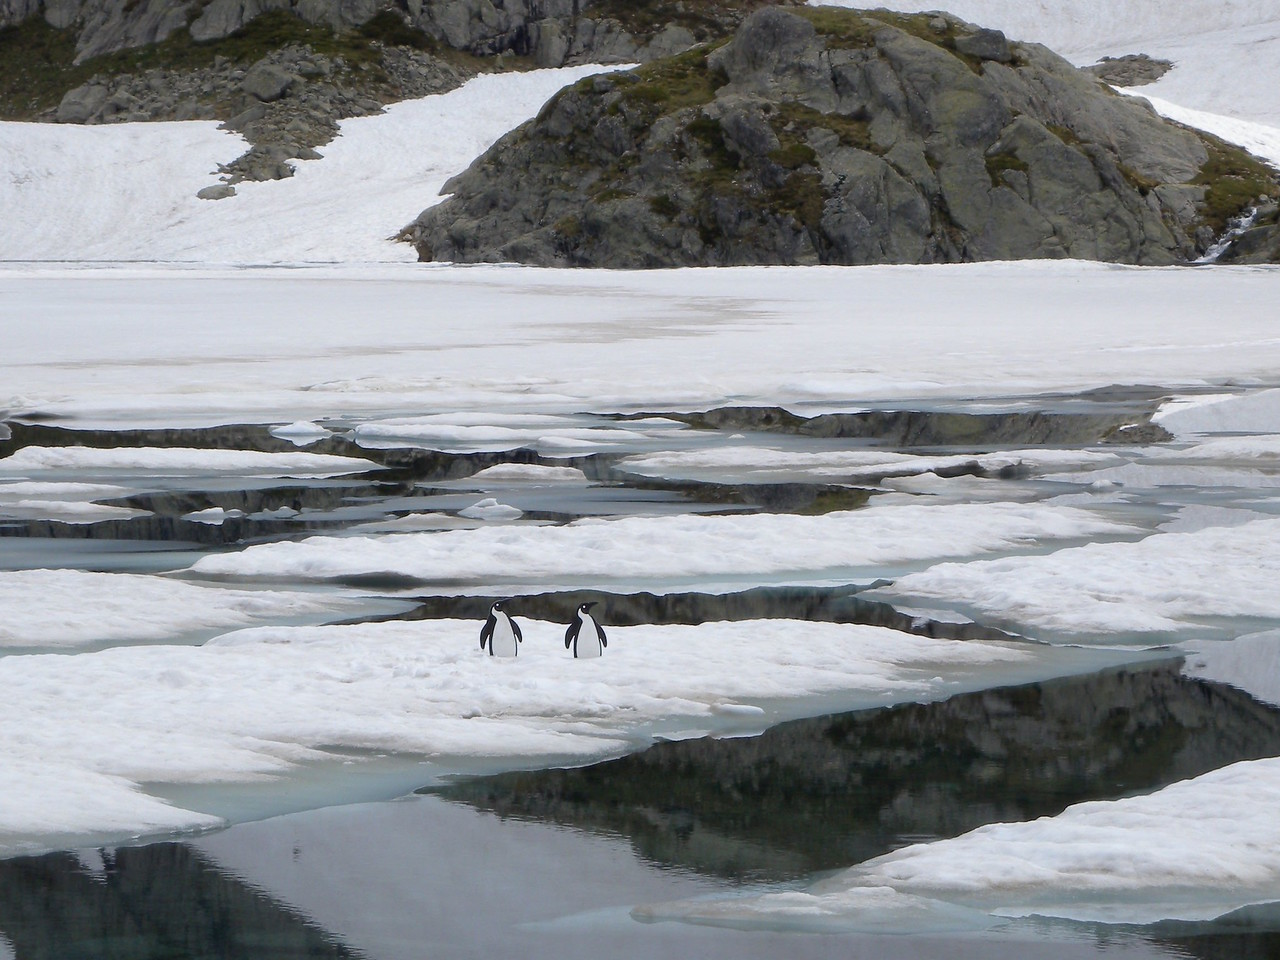 Penguins in Lake Arremoulit